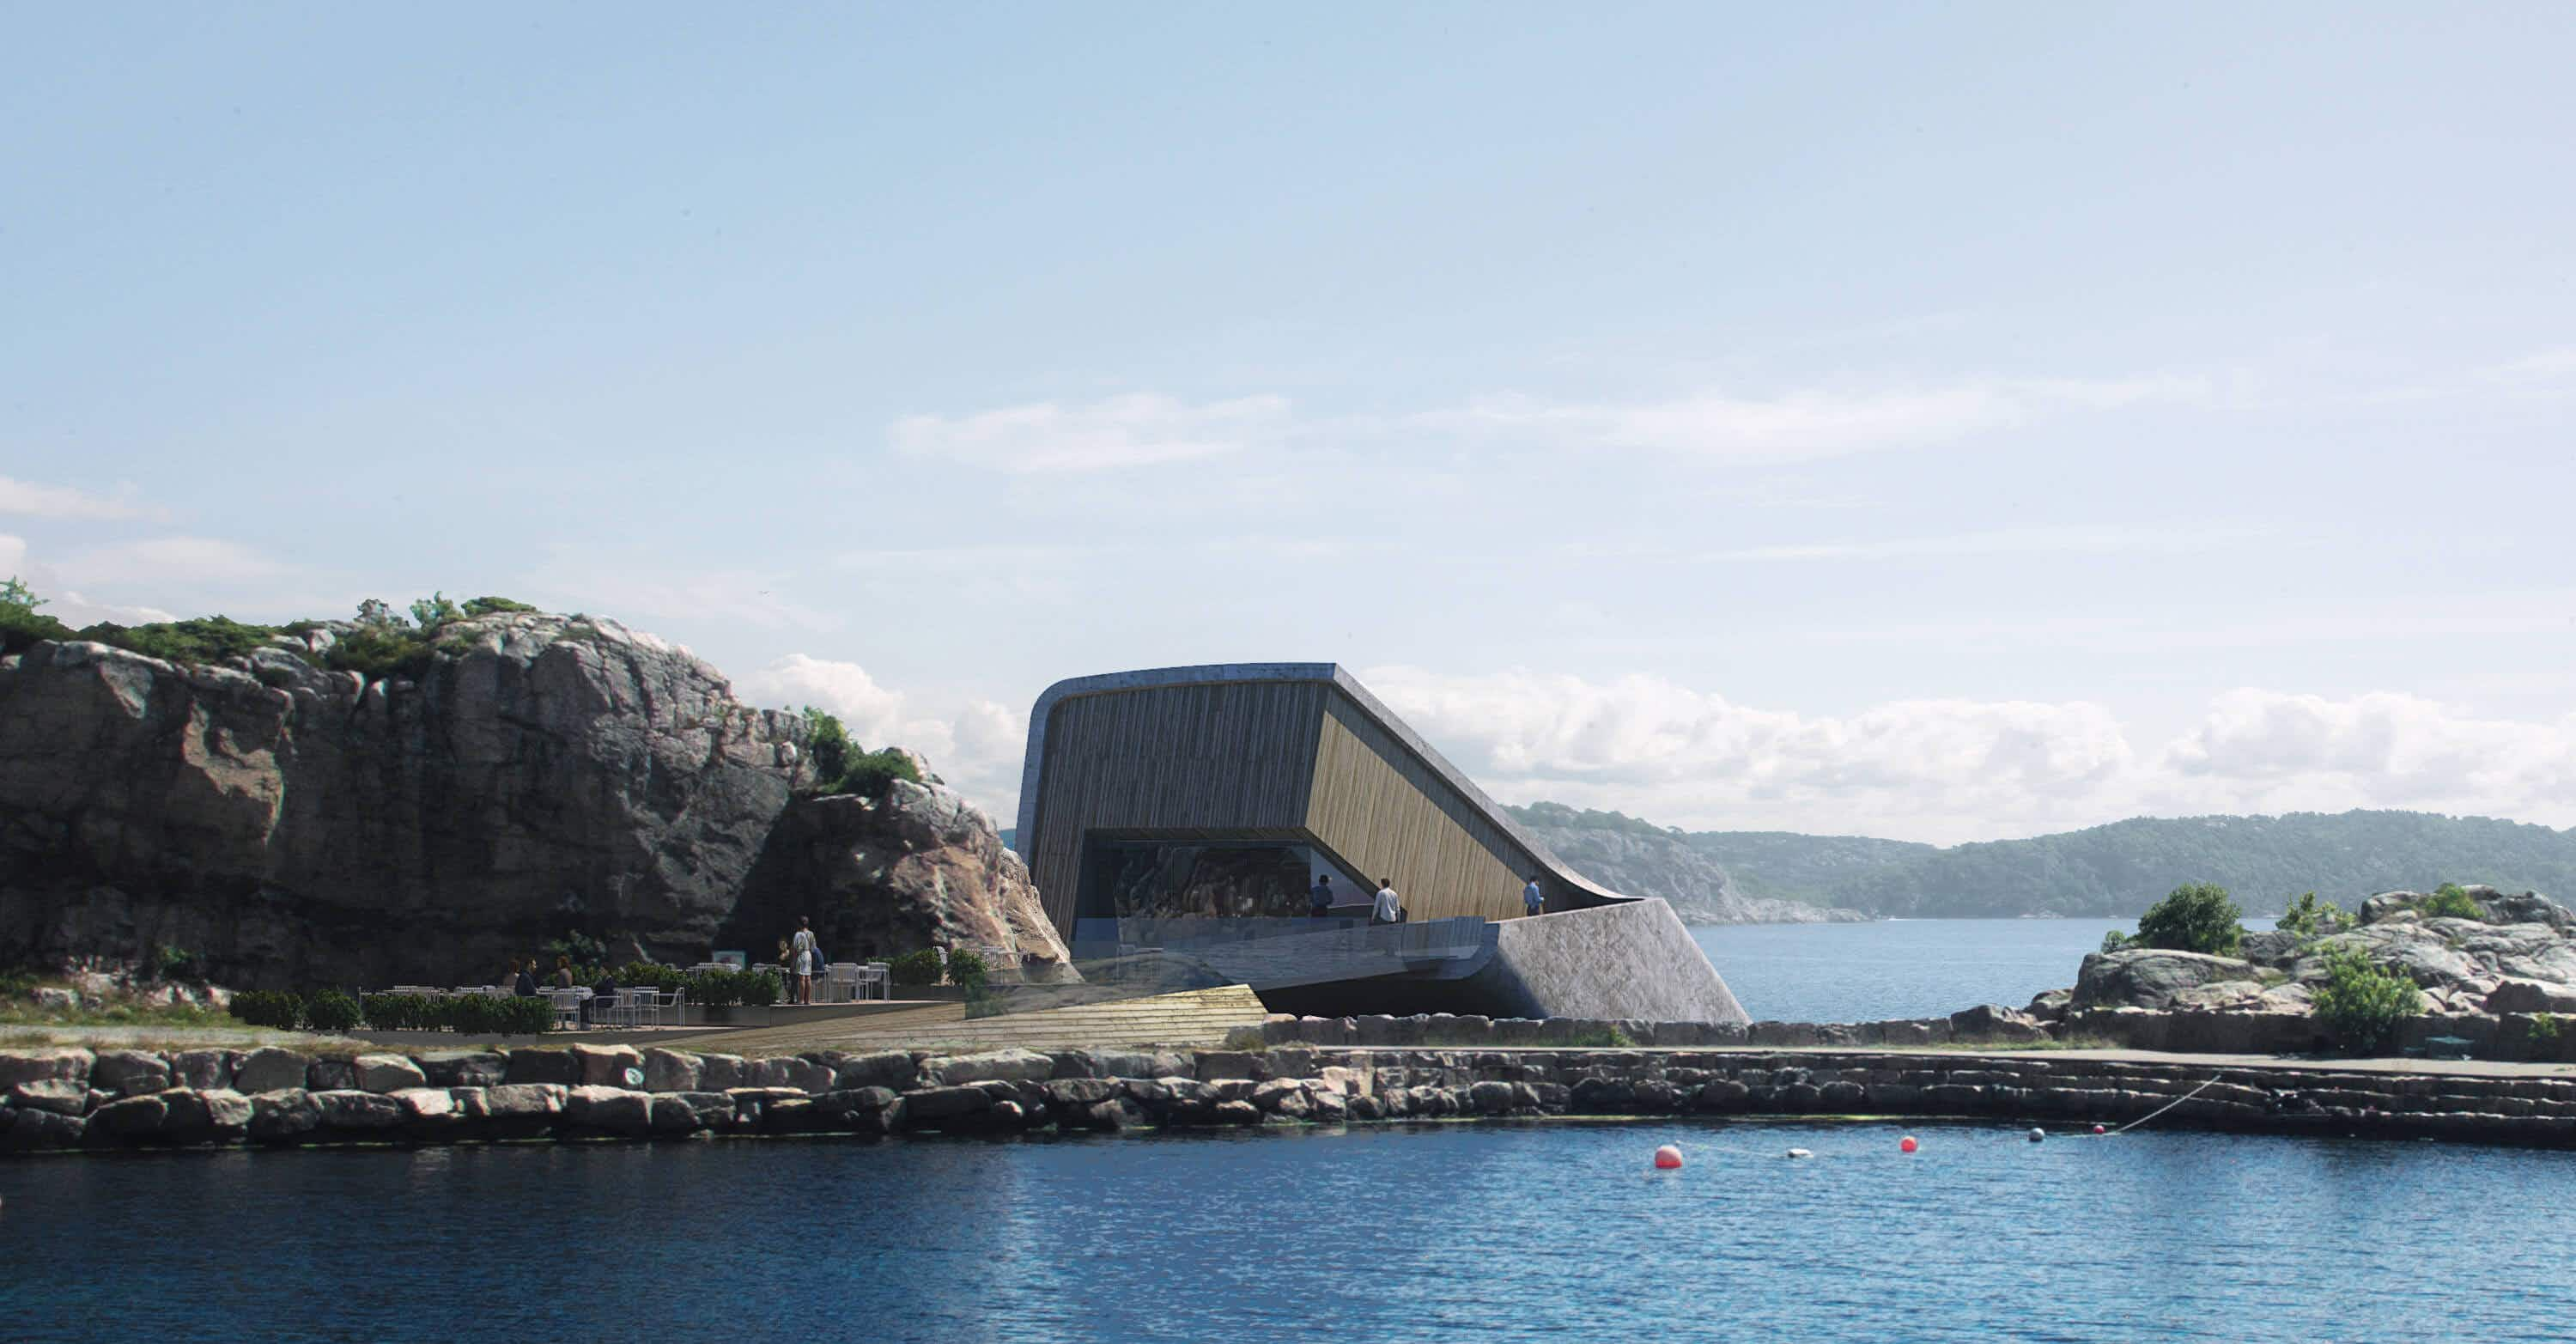 Get the first look at Europe's first restaurant under the sea in Norway